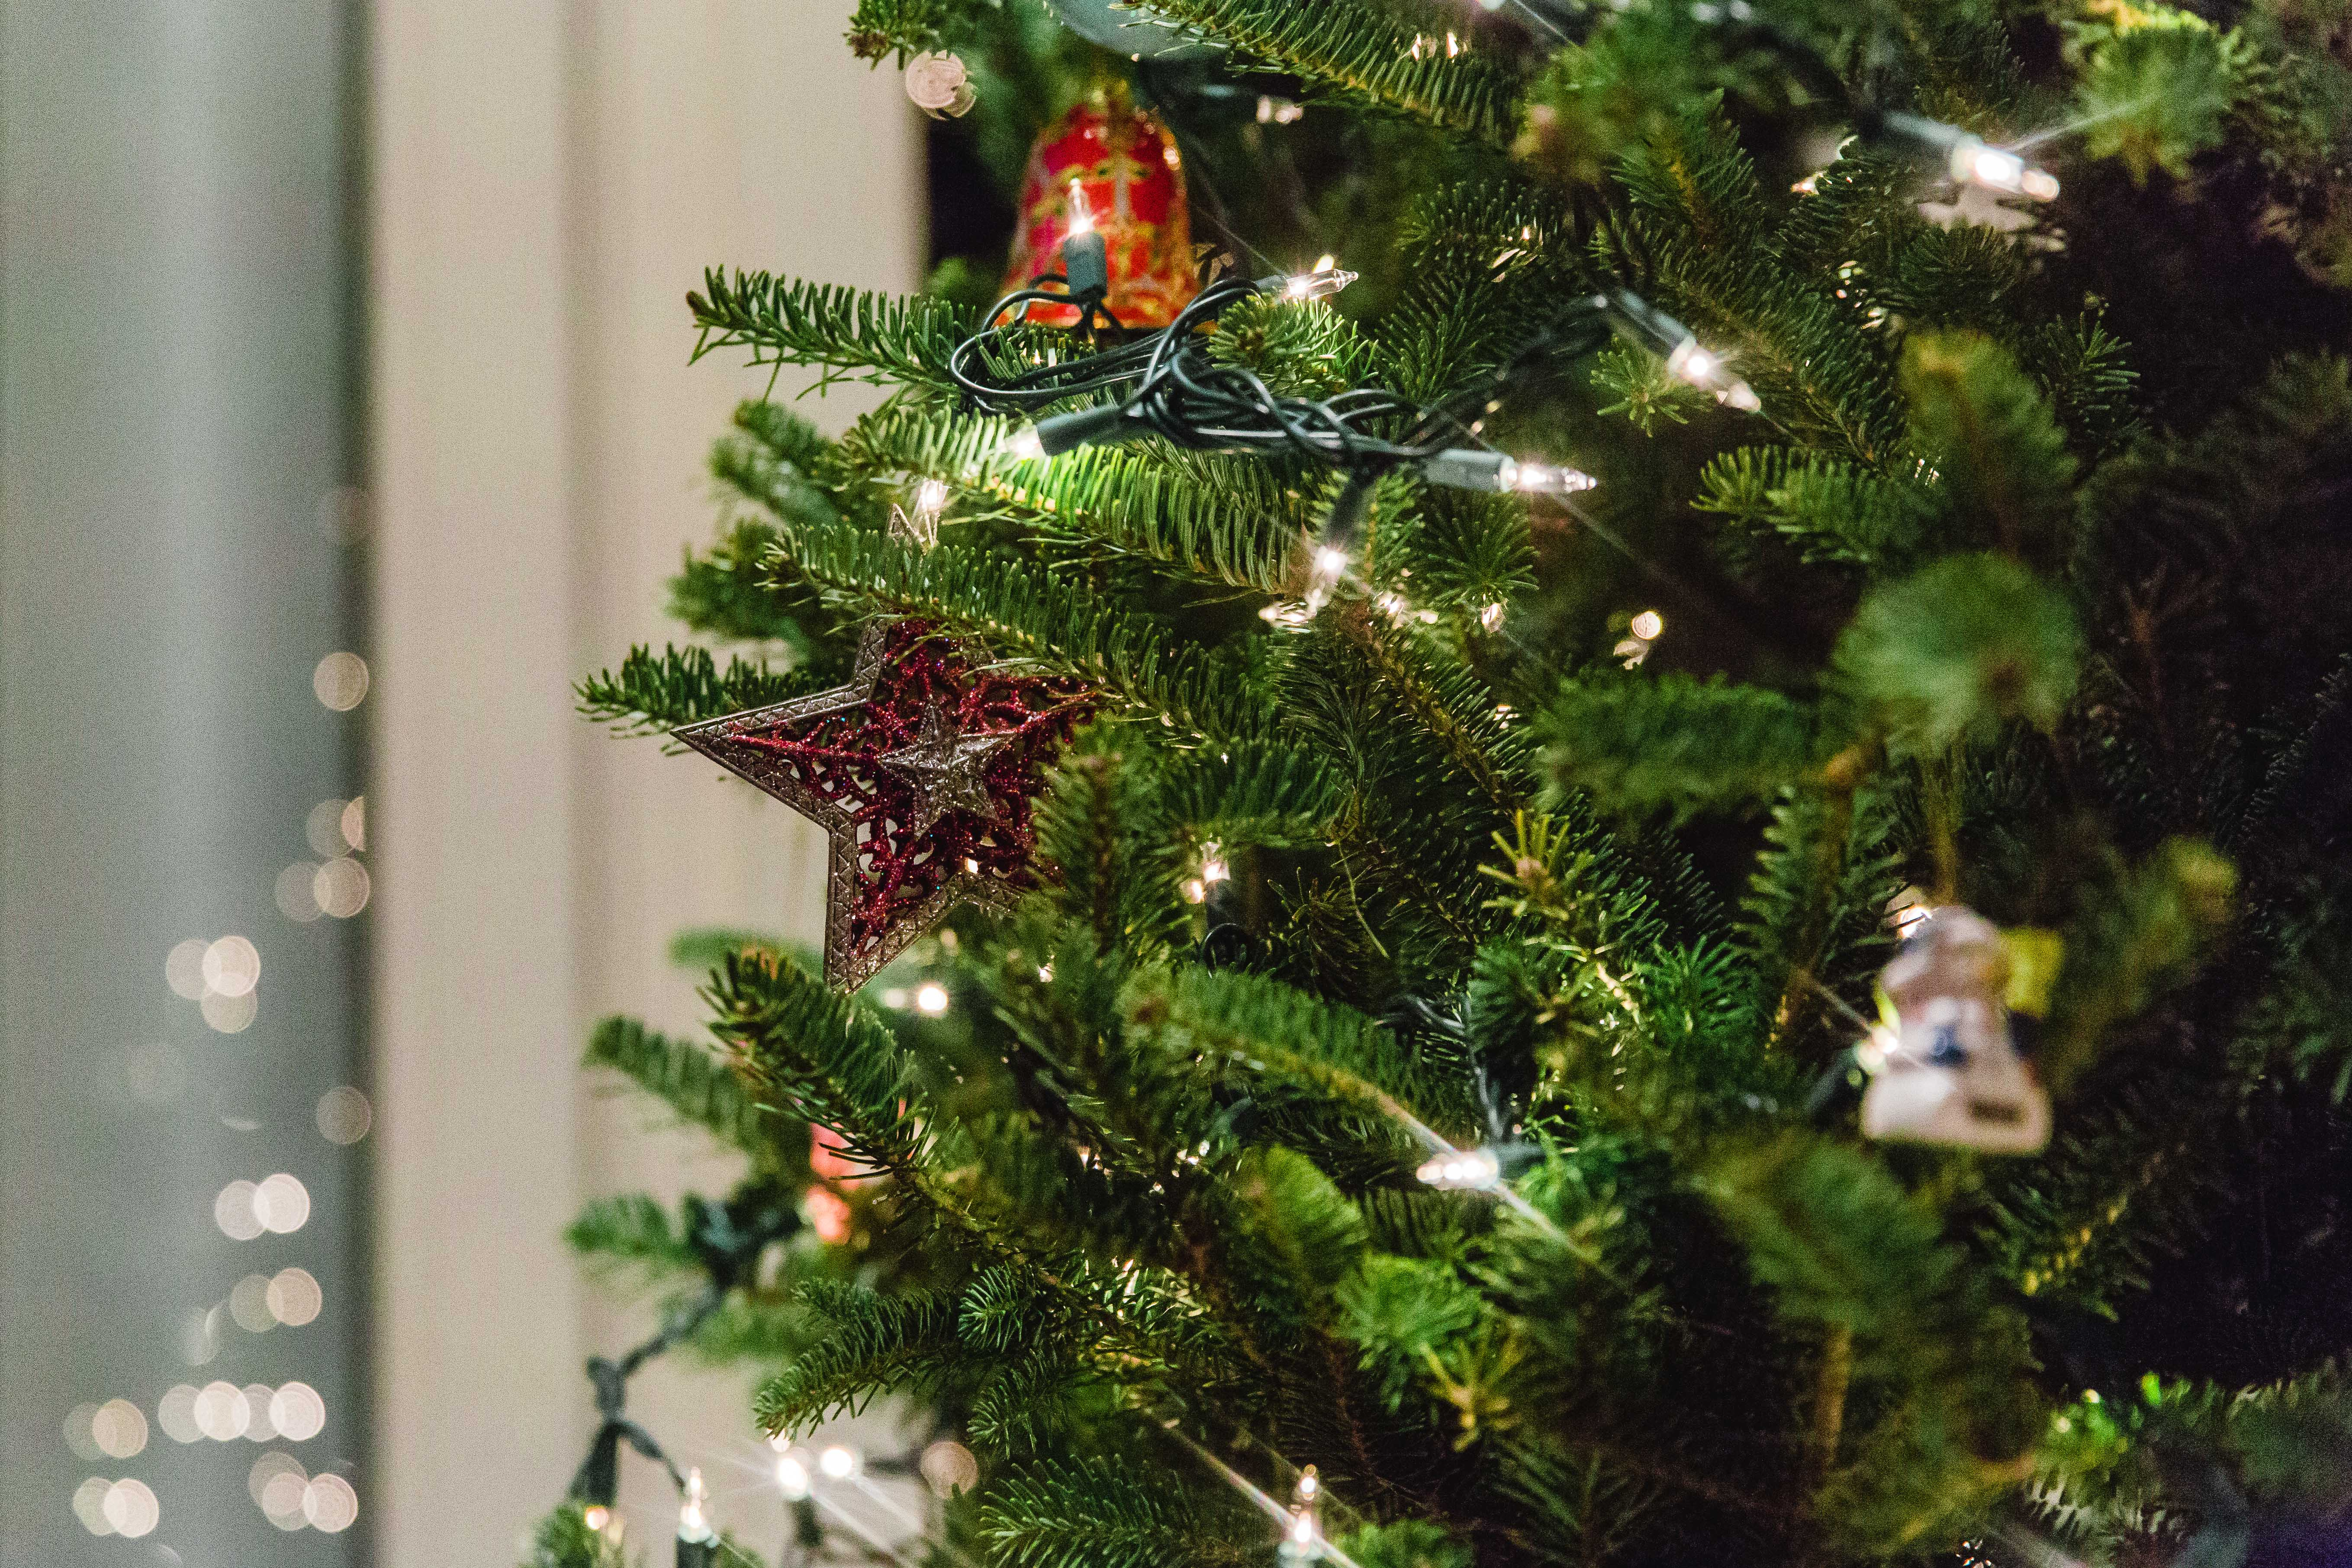 close up of red star and white lights on Christmas tree